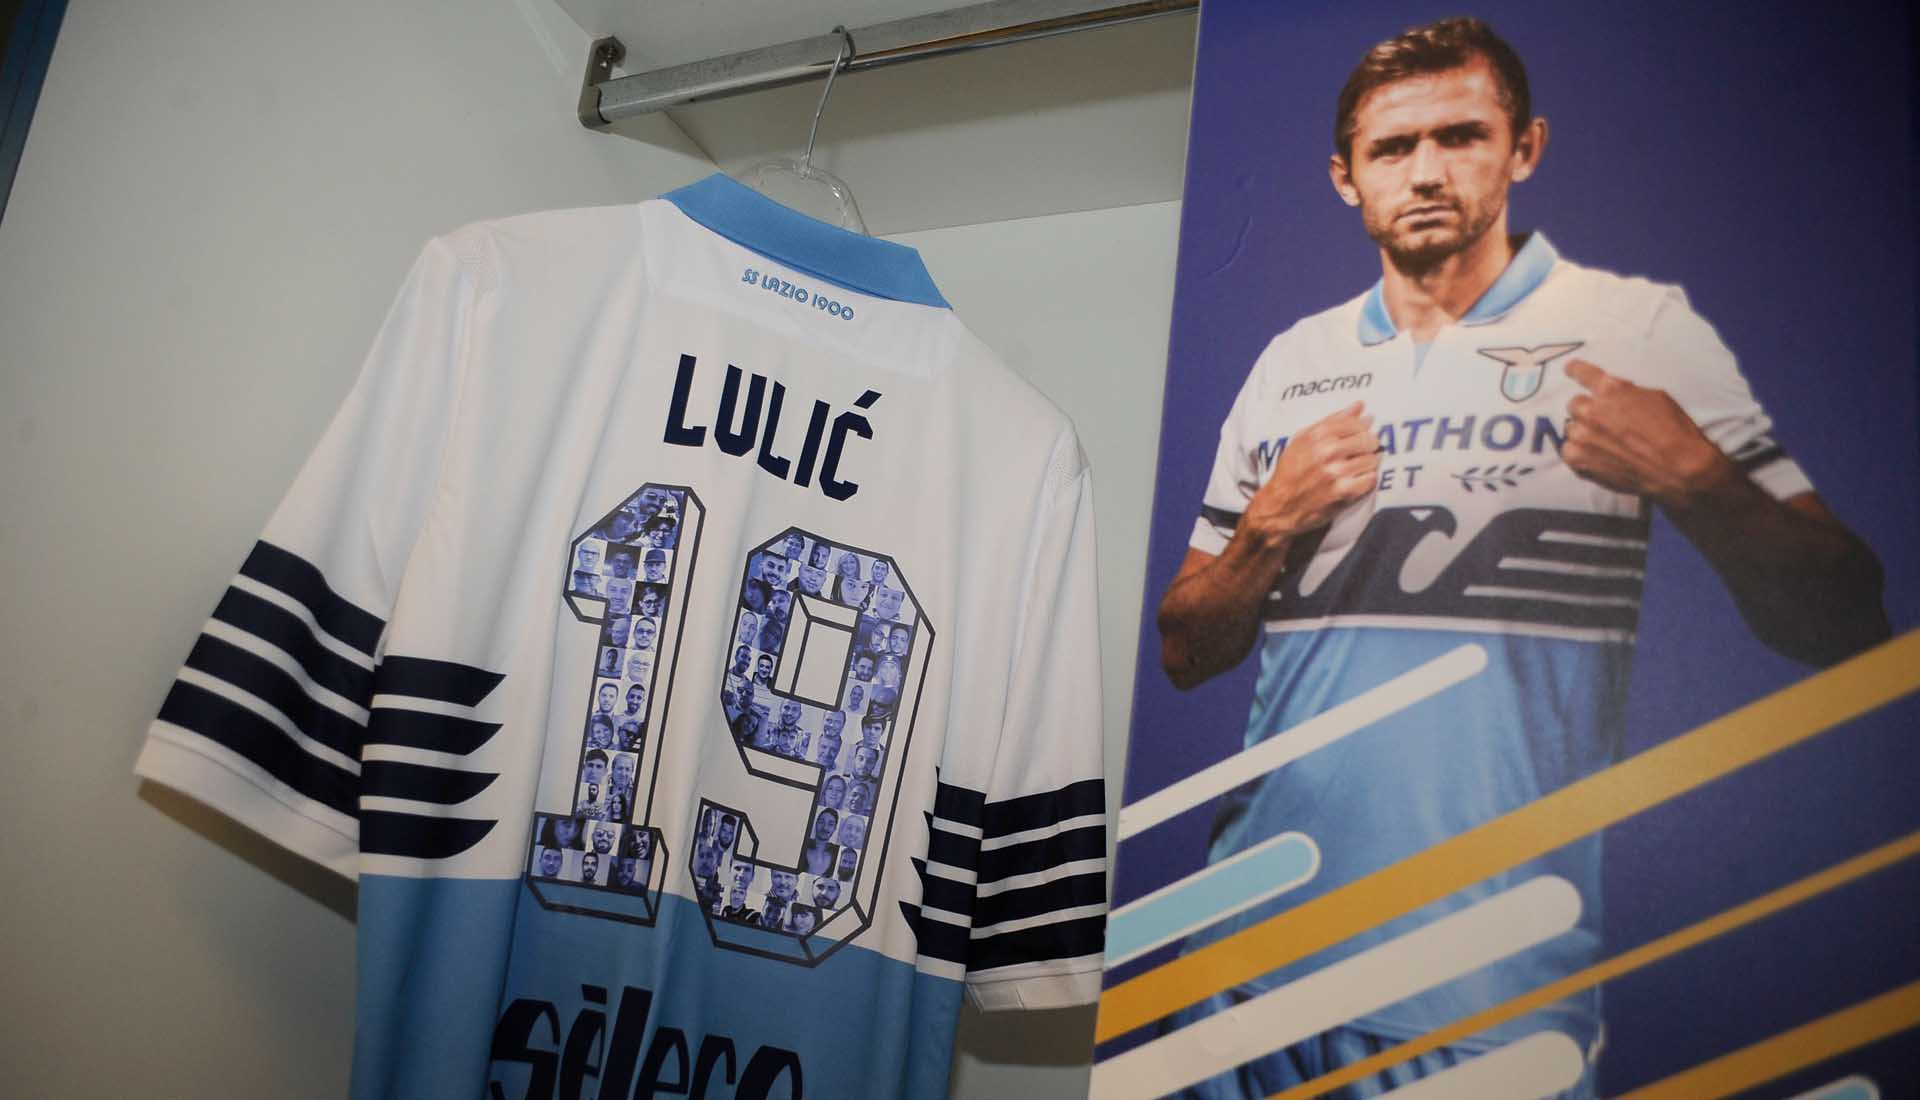 fc3bdc856 Lazio Wear Special Edition Shirt Numbers Against Inter - SoccerBible.